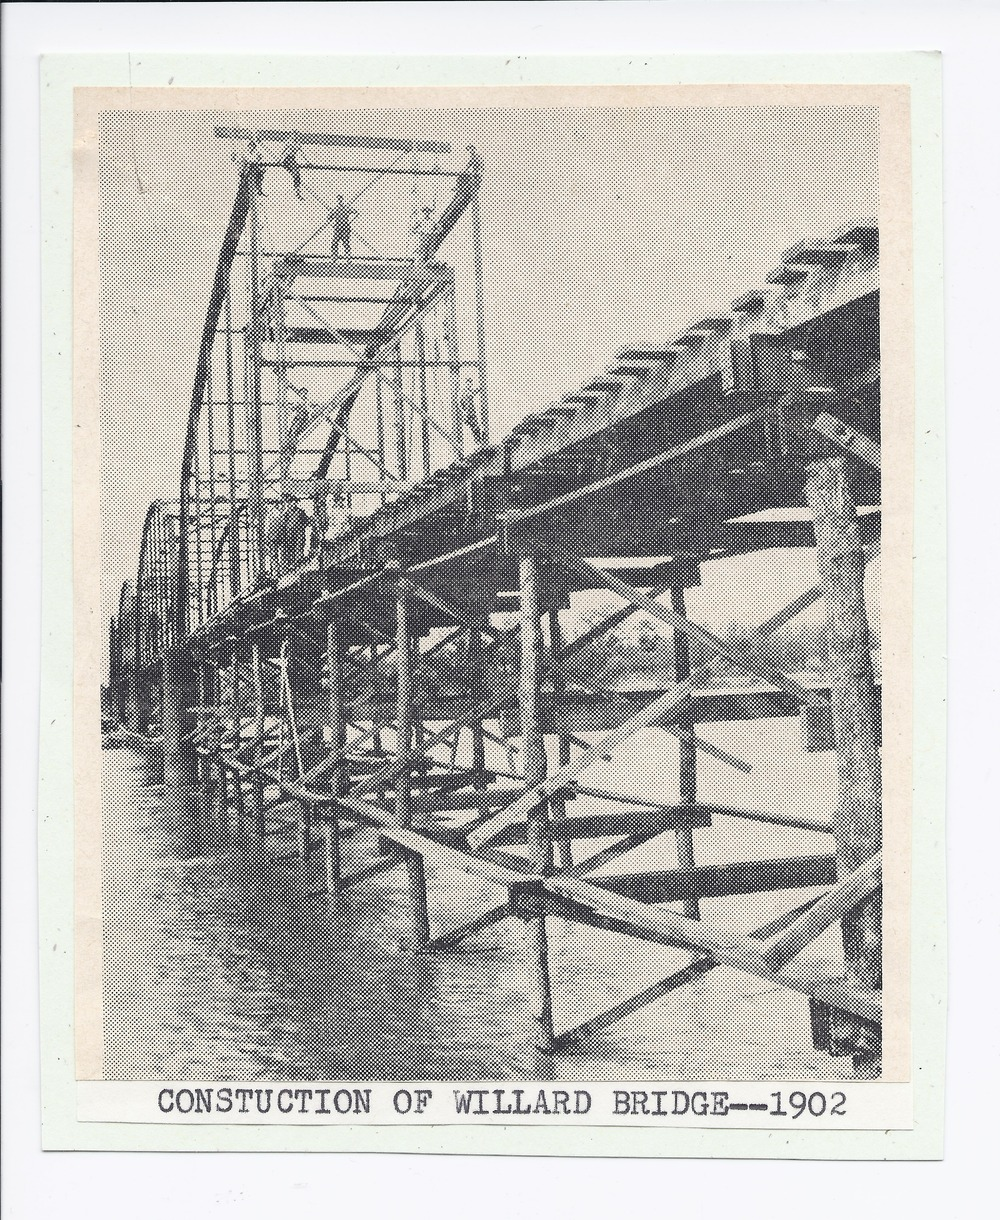 Construction of the Willard bridge, Willard, Kansas